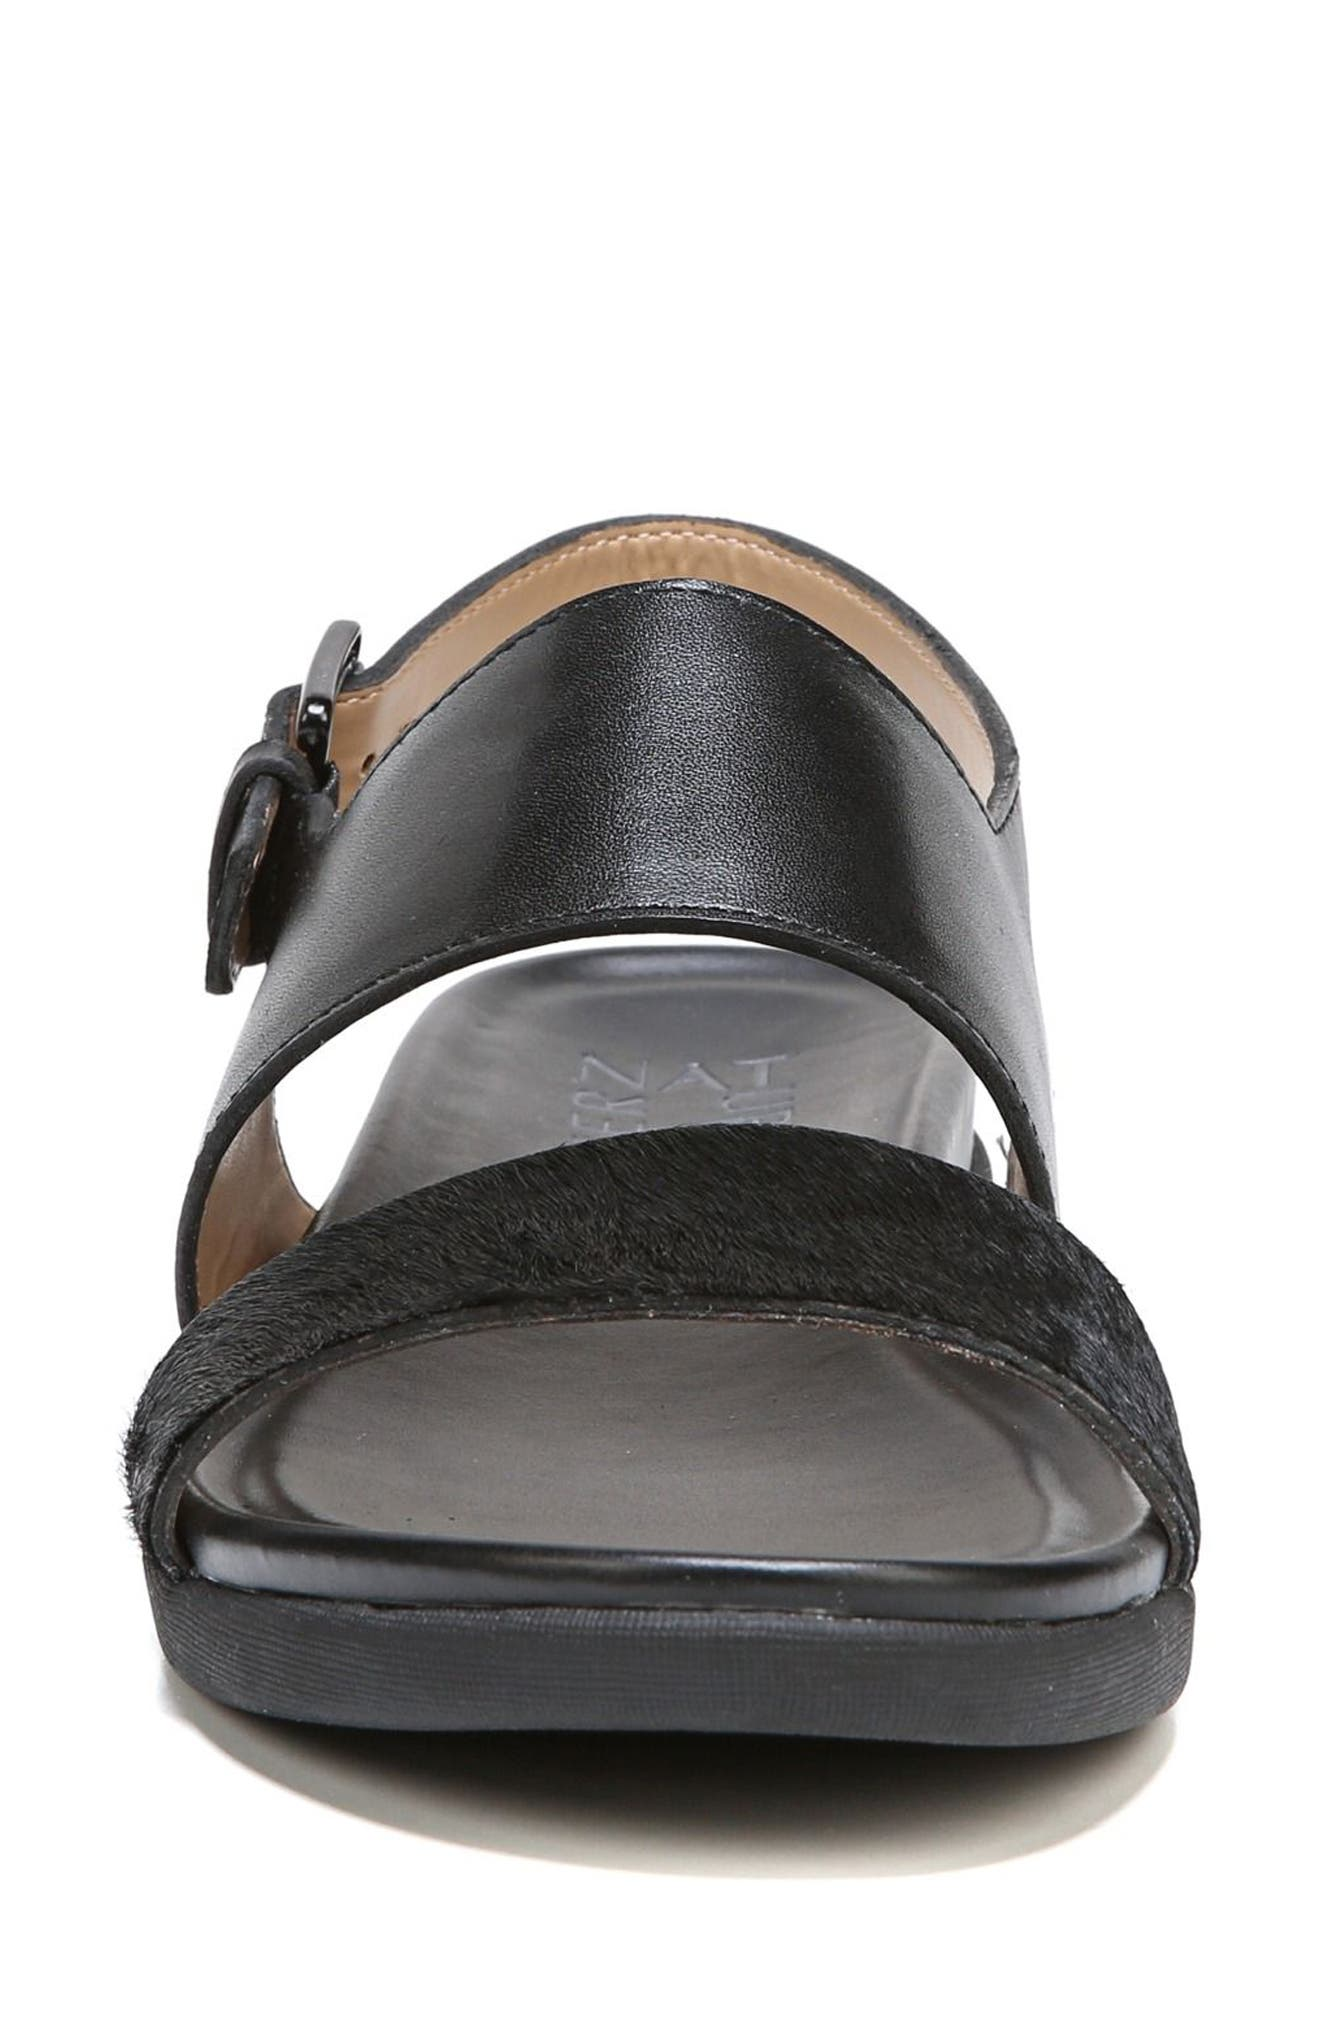 Emory Wedge Sandal,                             Alternate thumbnail 4, color,                             BLACK LEATHER